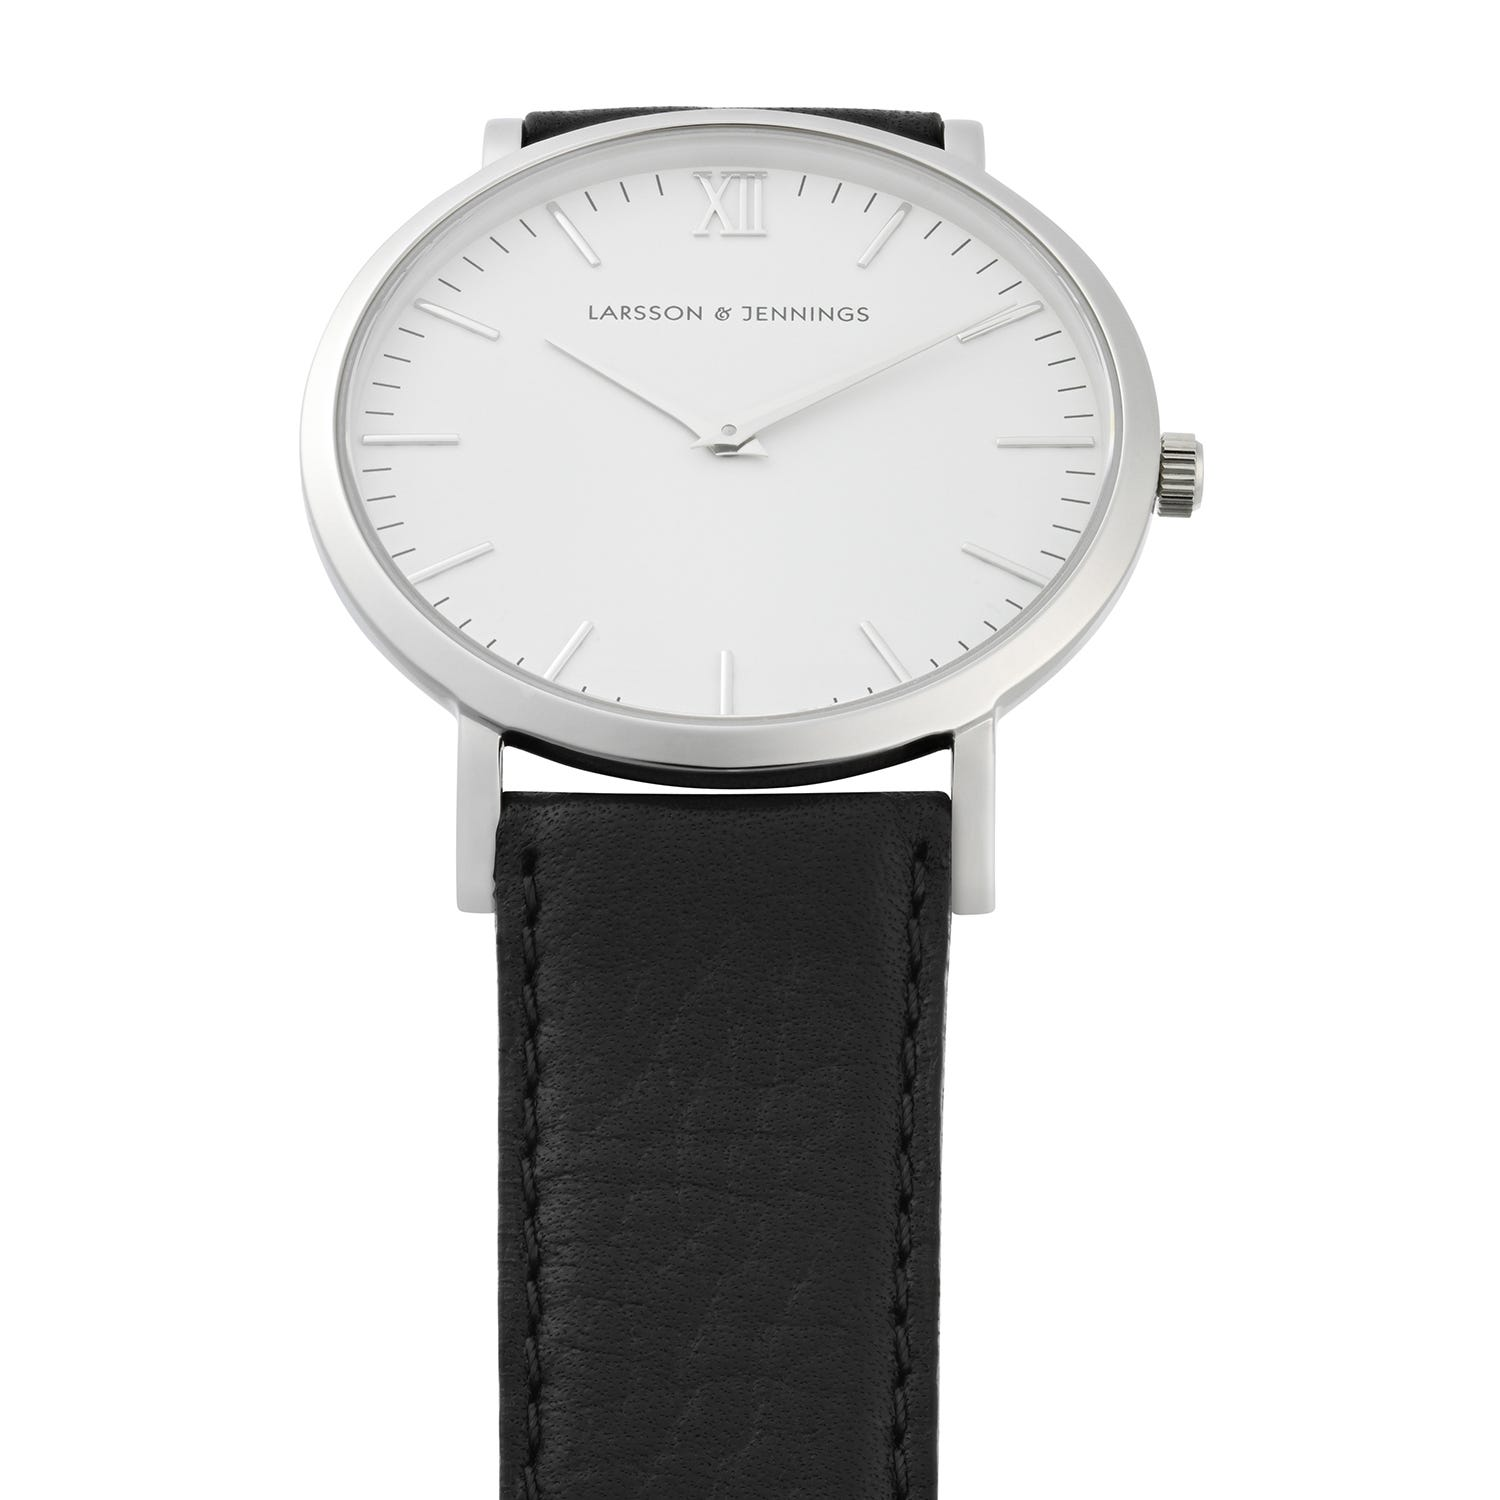 Larsson & Jennings 40mm Lugano Black Leather and Stainless Steel Watch